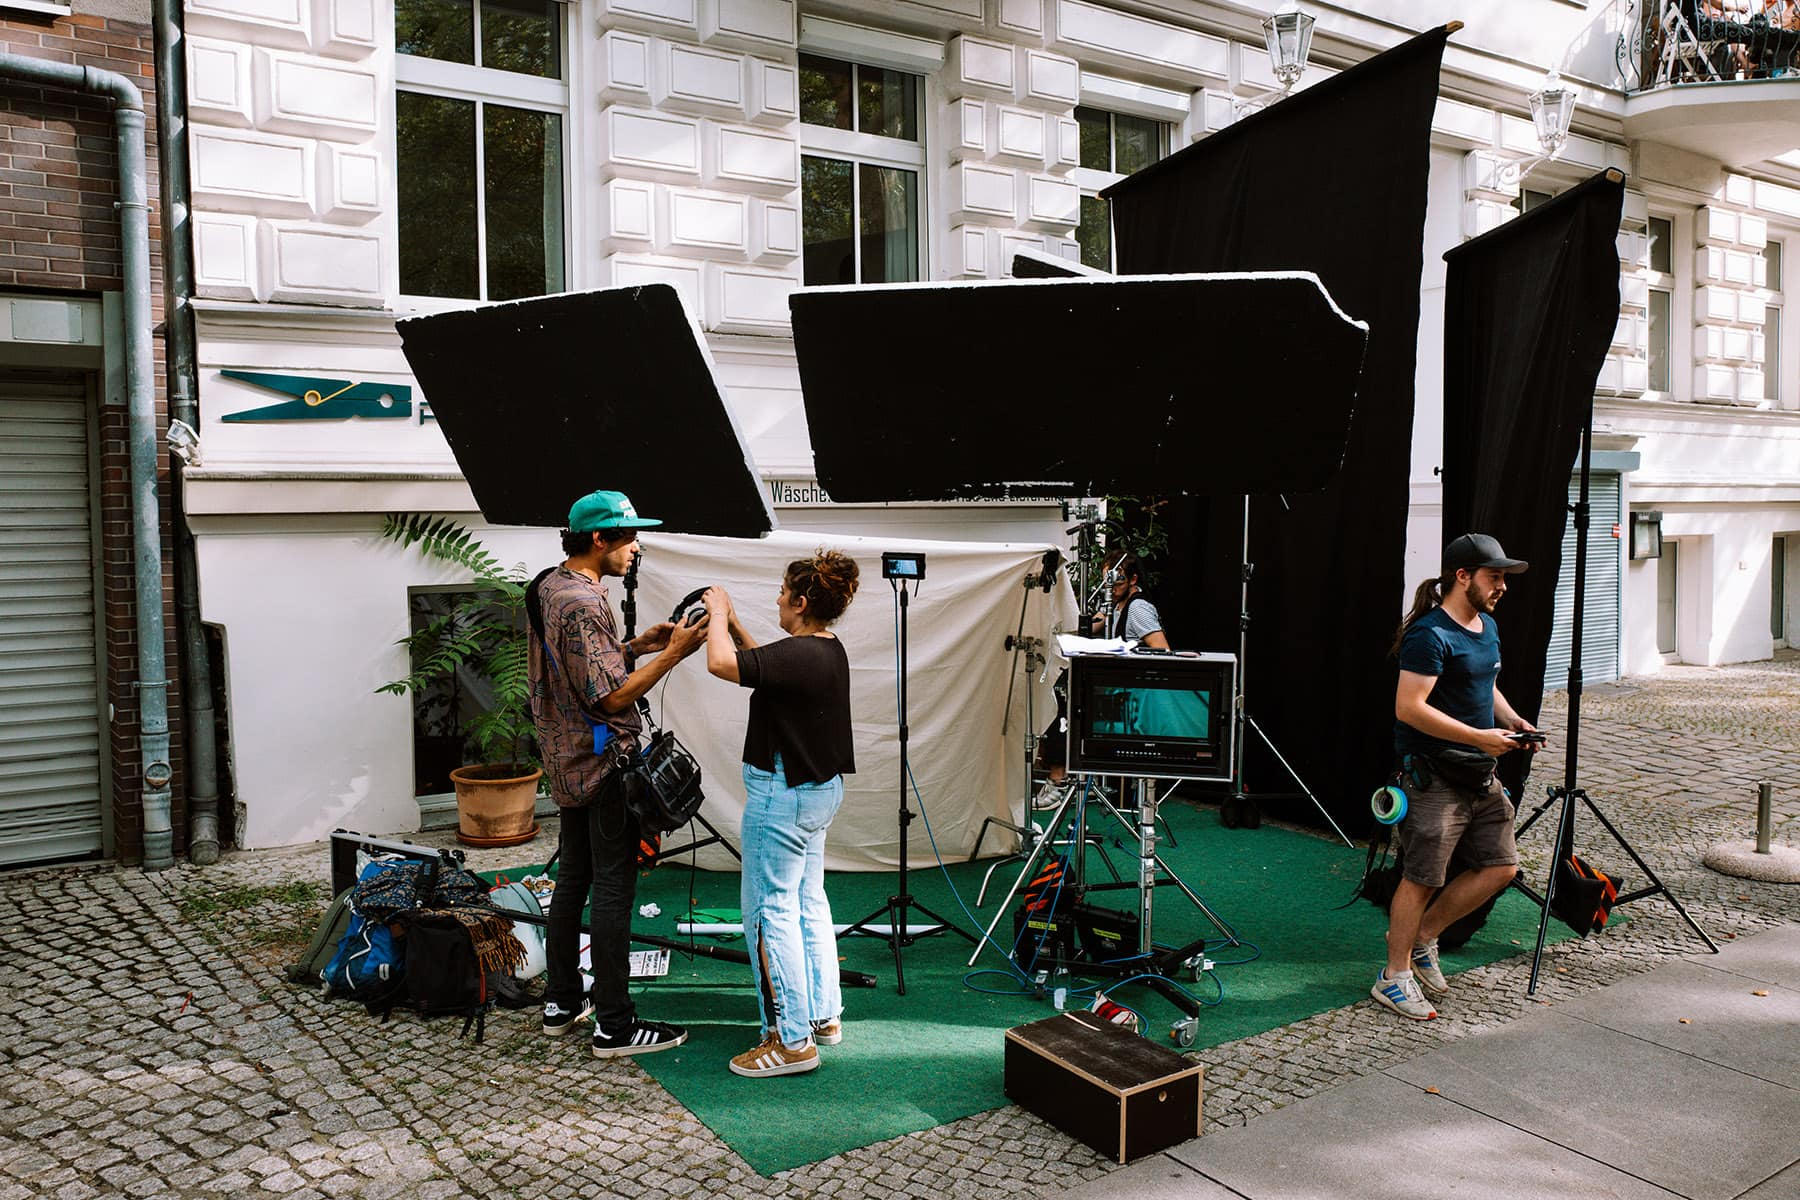 studio film owe na ulicach berlina